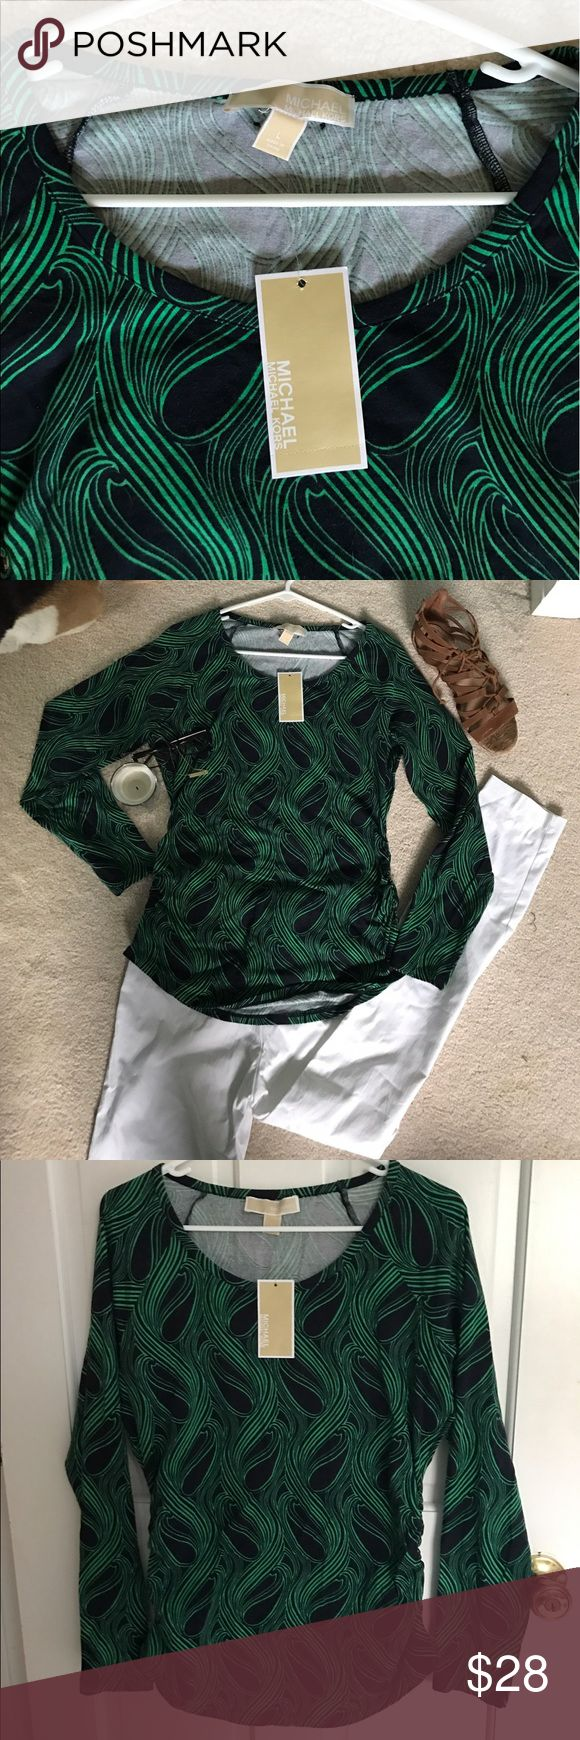 Michael Kors Long Sleeve Michael Kors Long Sleeve Top, beautiful swirl pattern, light weight top, brand new, looks great with white pants/ shorts MICHAEL Michael Kors Tops Tees - Long Sleeve